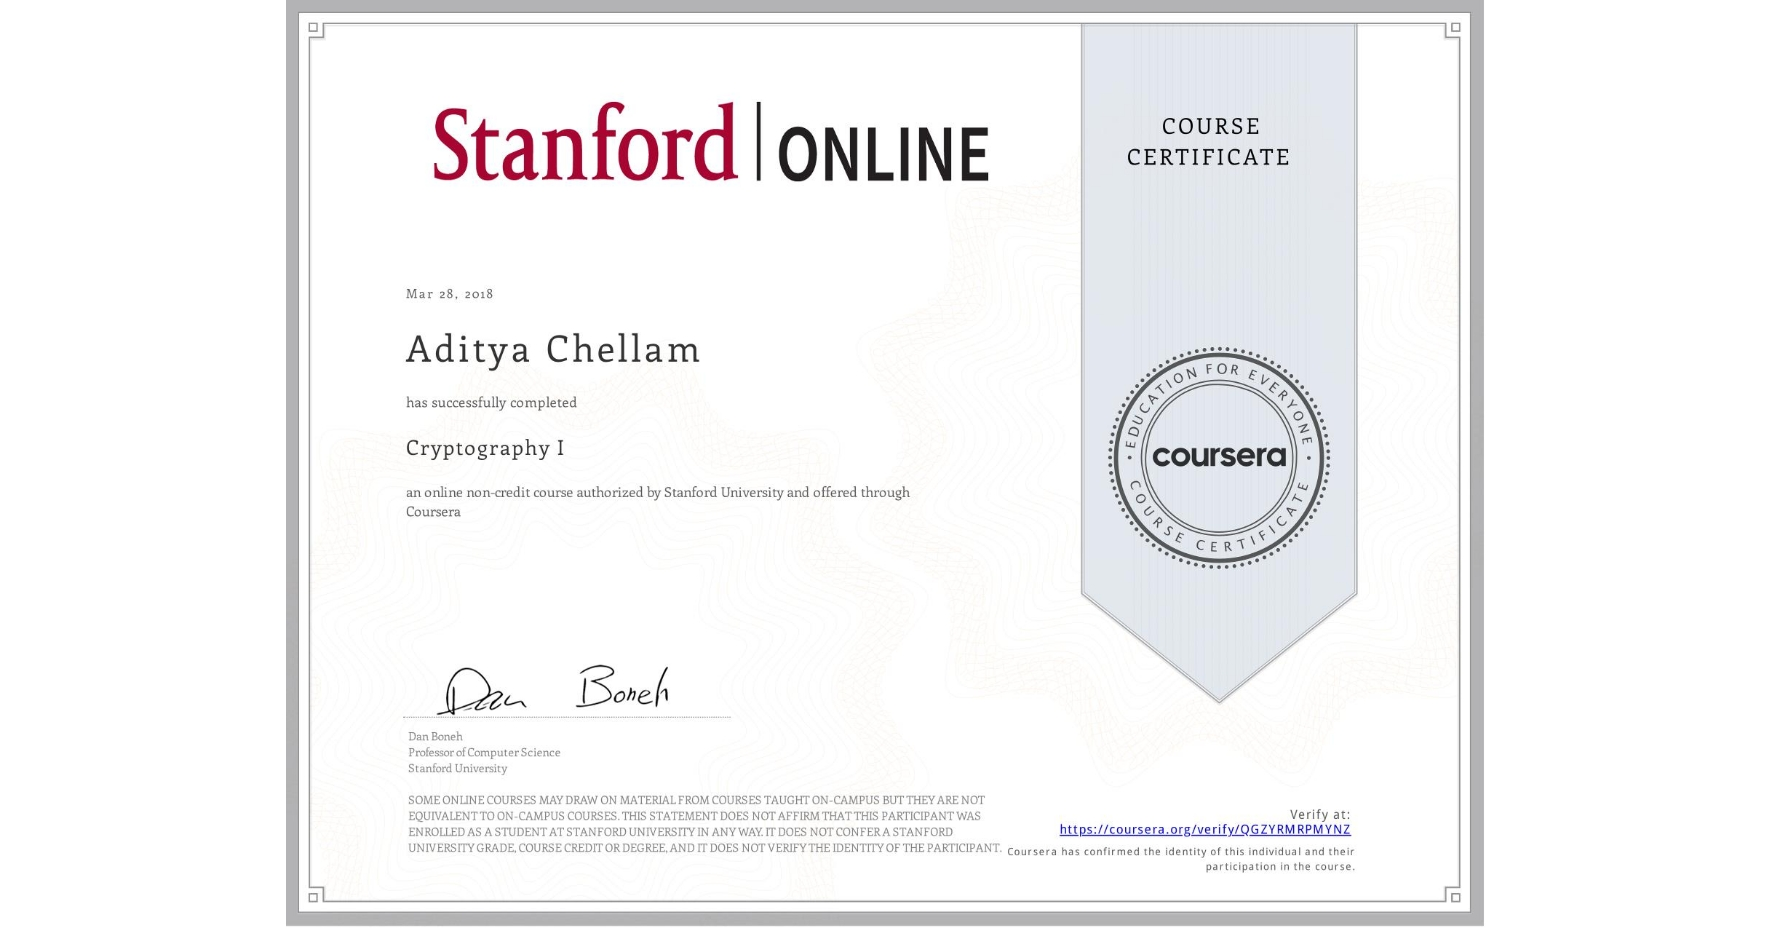 View certificate for Aditya Chellam, Cryptography I, an online non-credit course authorized by Stanford University and offered through Coursera